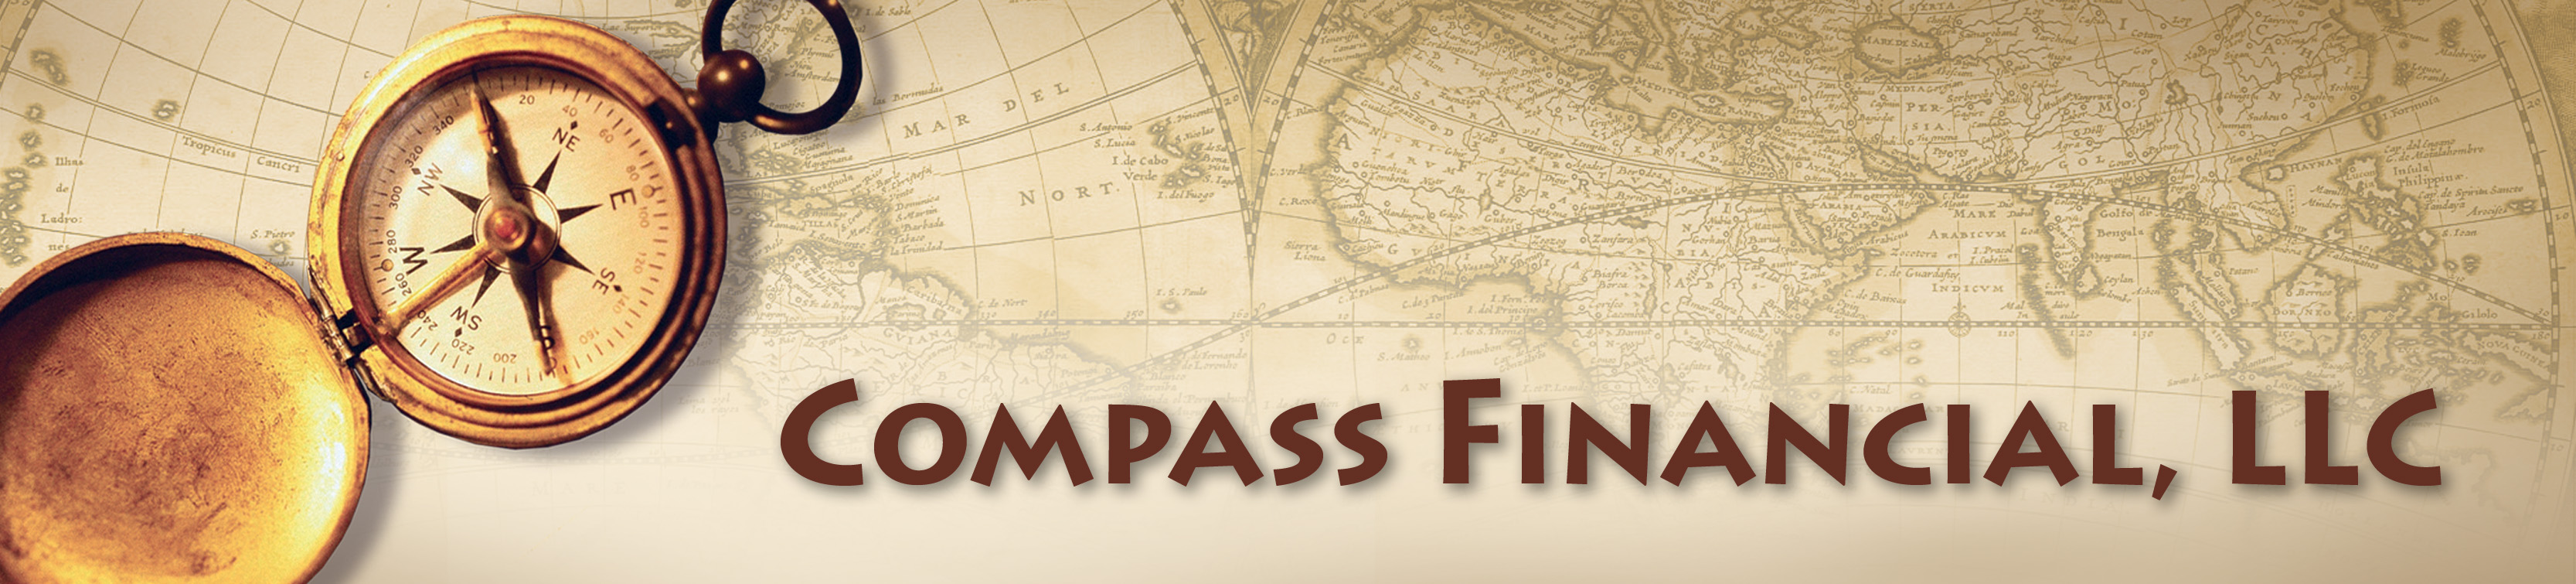 Compass Financial, LLC